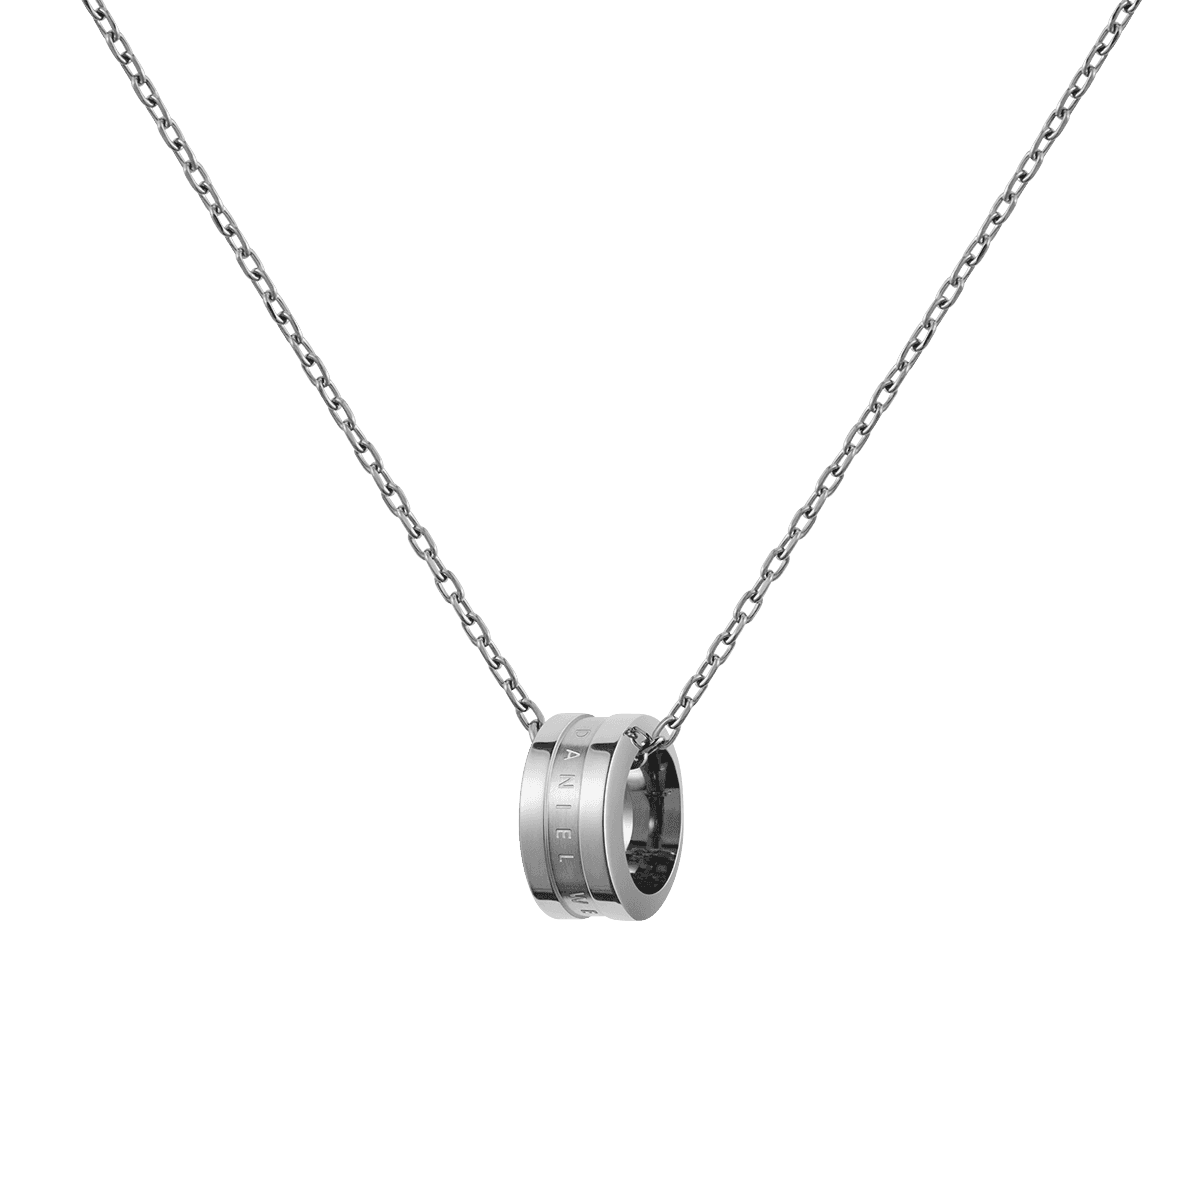 Elan Necklace Silver One Size